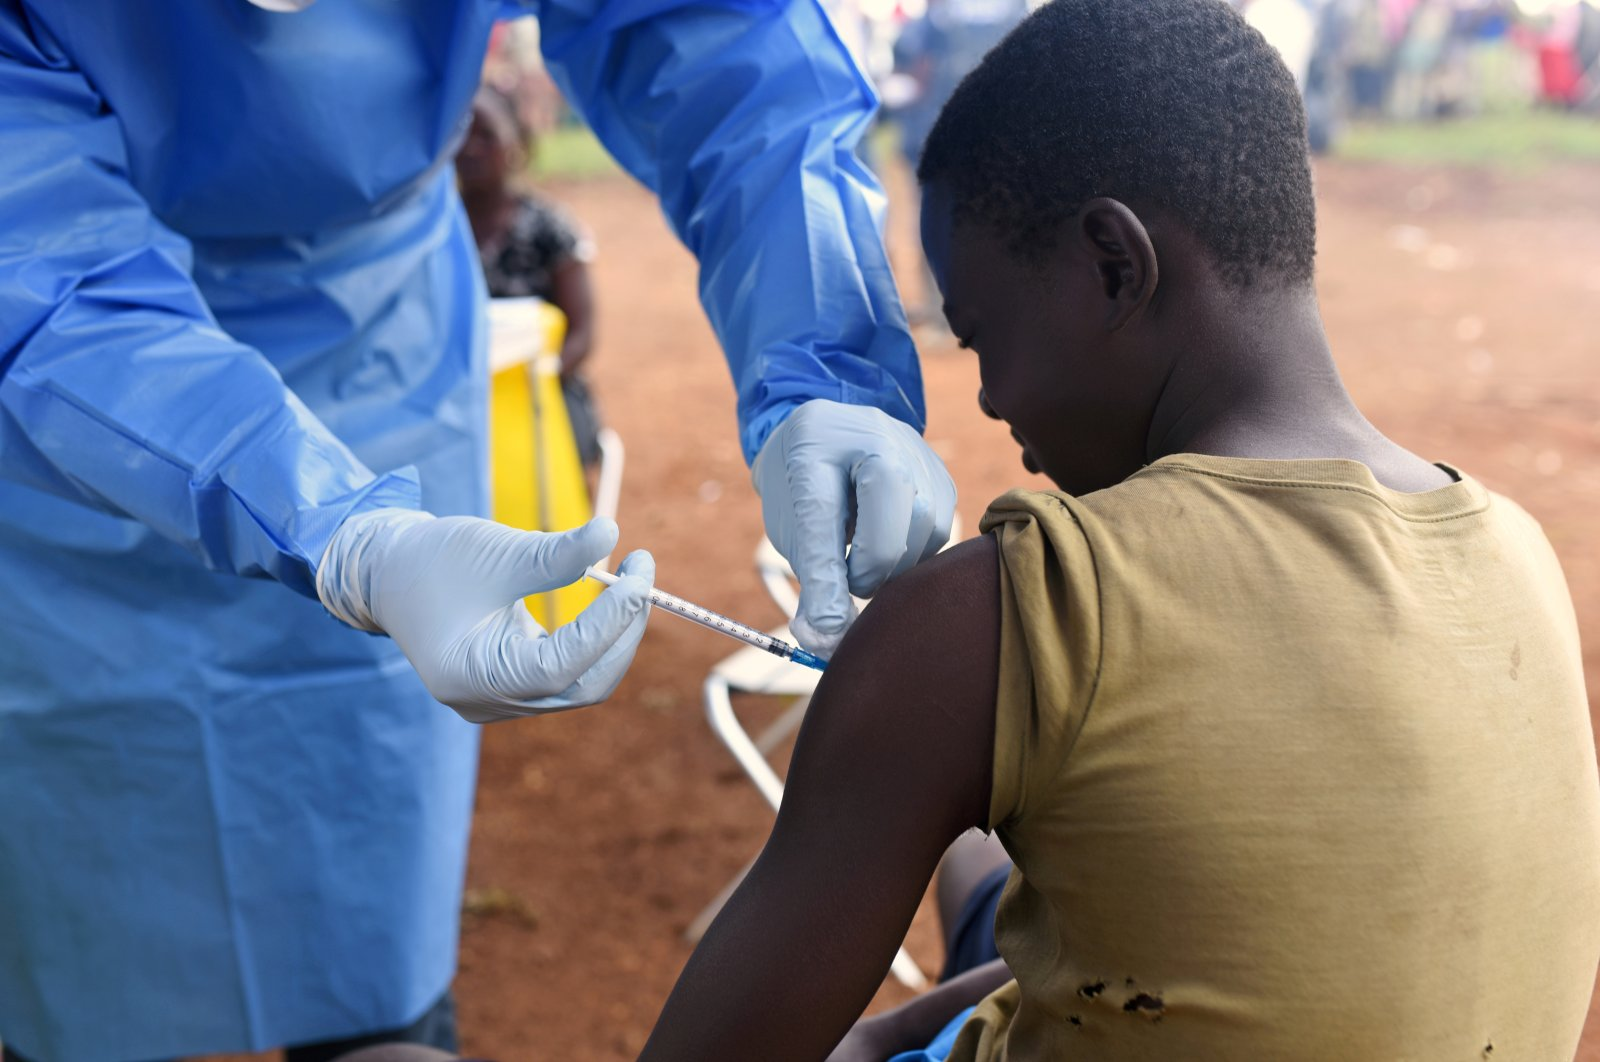 DR Congo en route to declaring end of latest Ebola outbreak